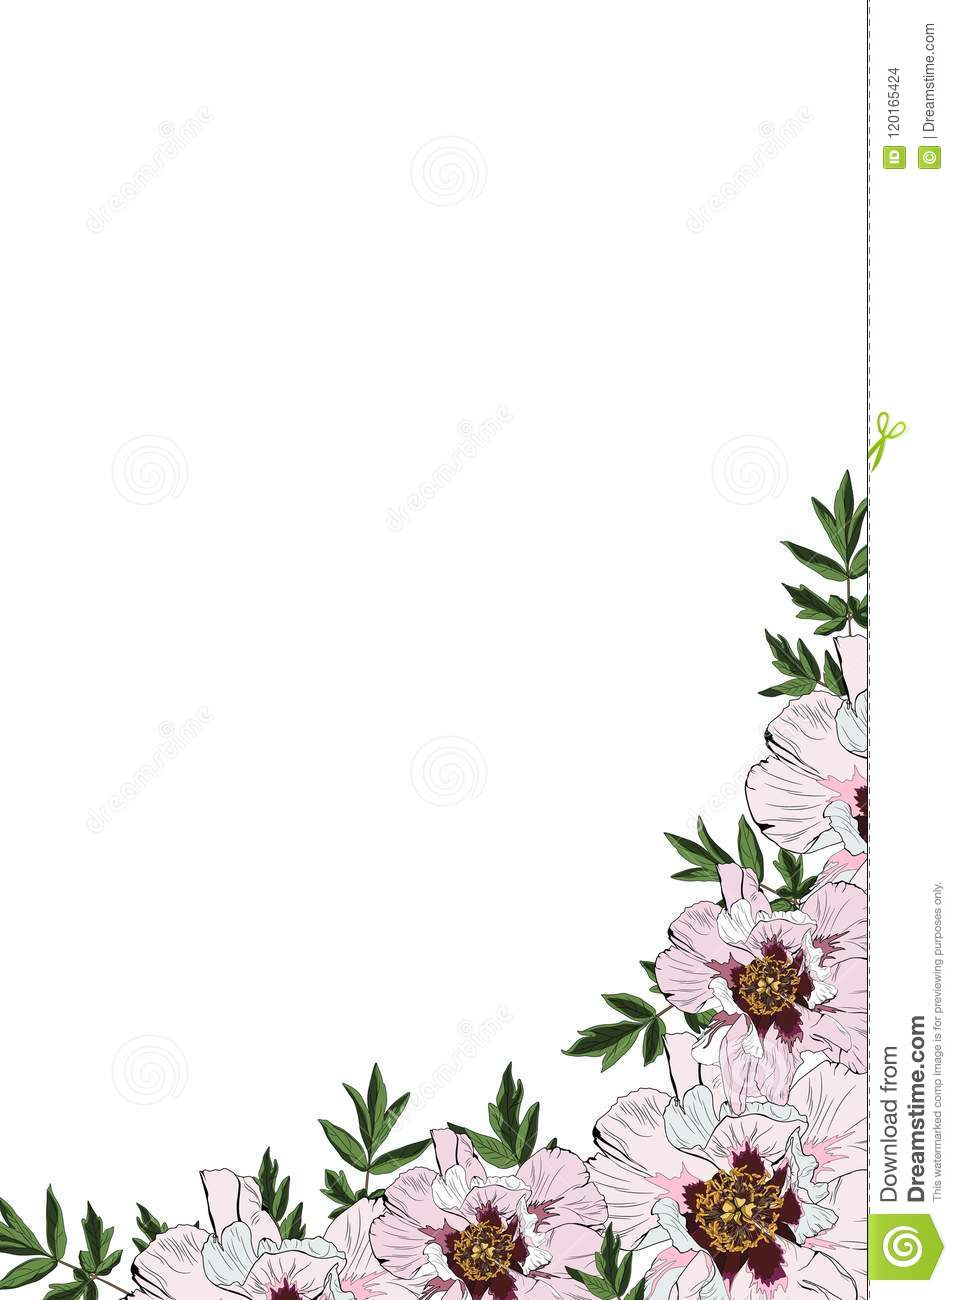 image about Printable Frame Template identify Crimson Peony Invitation Body Vector Spring Summer season Floral